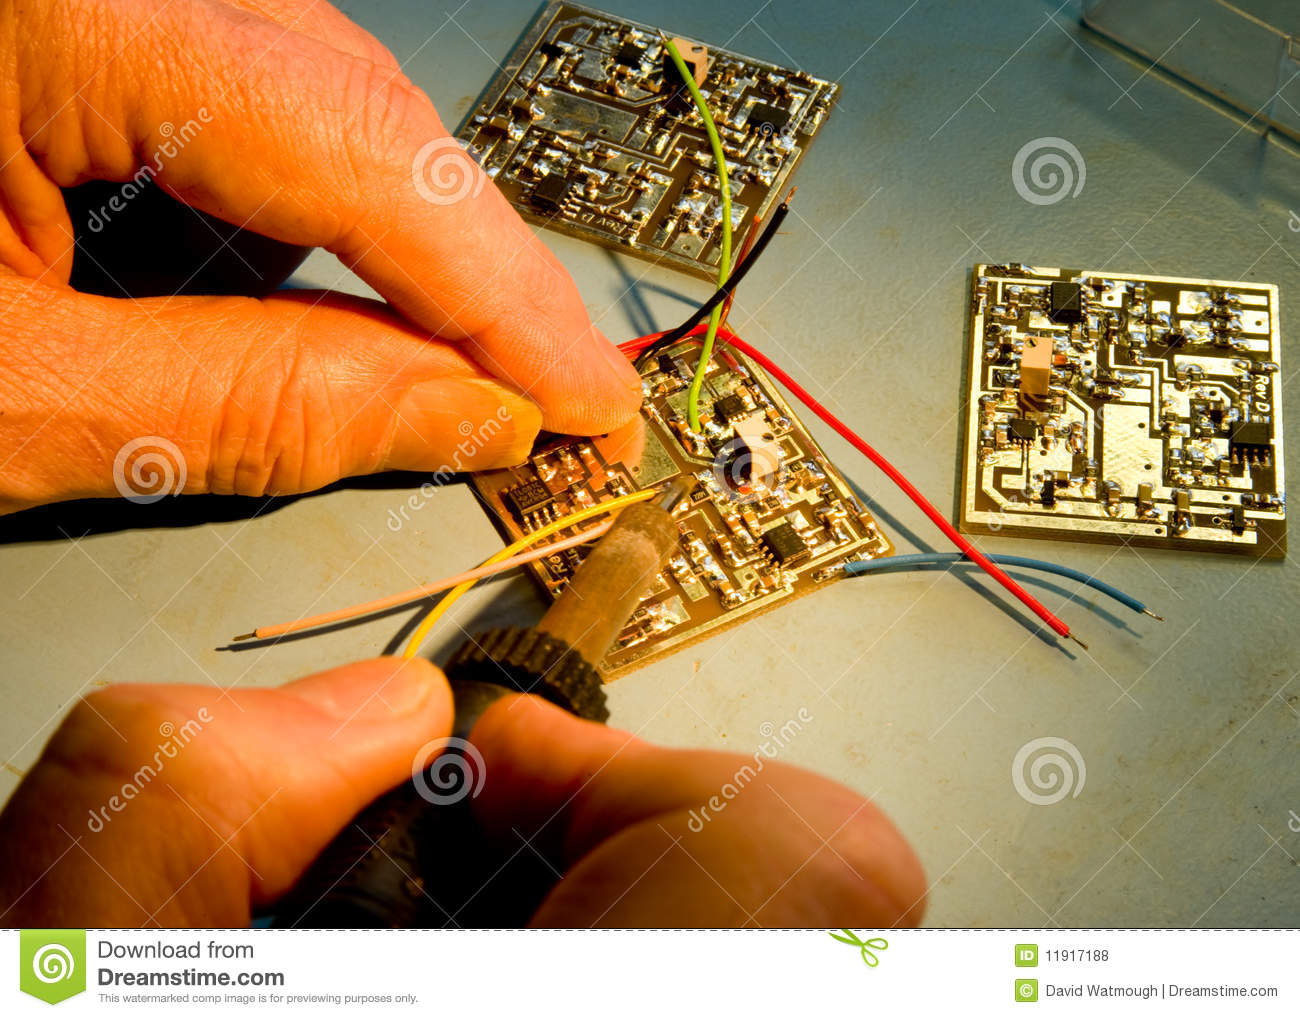 engineer soldering wires to a circuit board stock photo image of rh dreamstime com